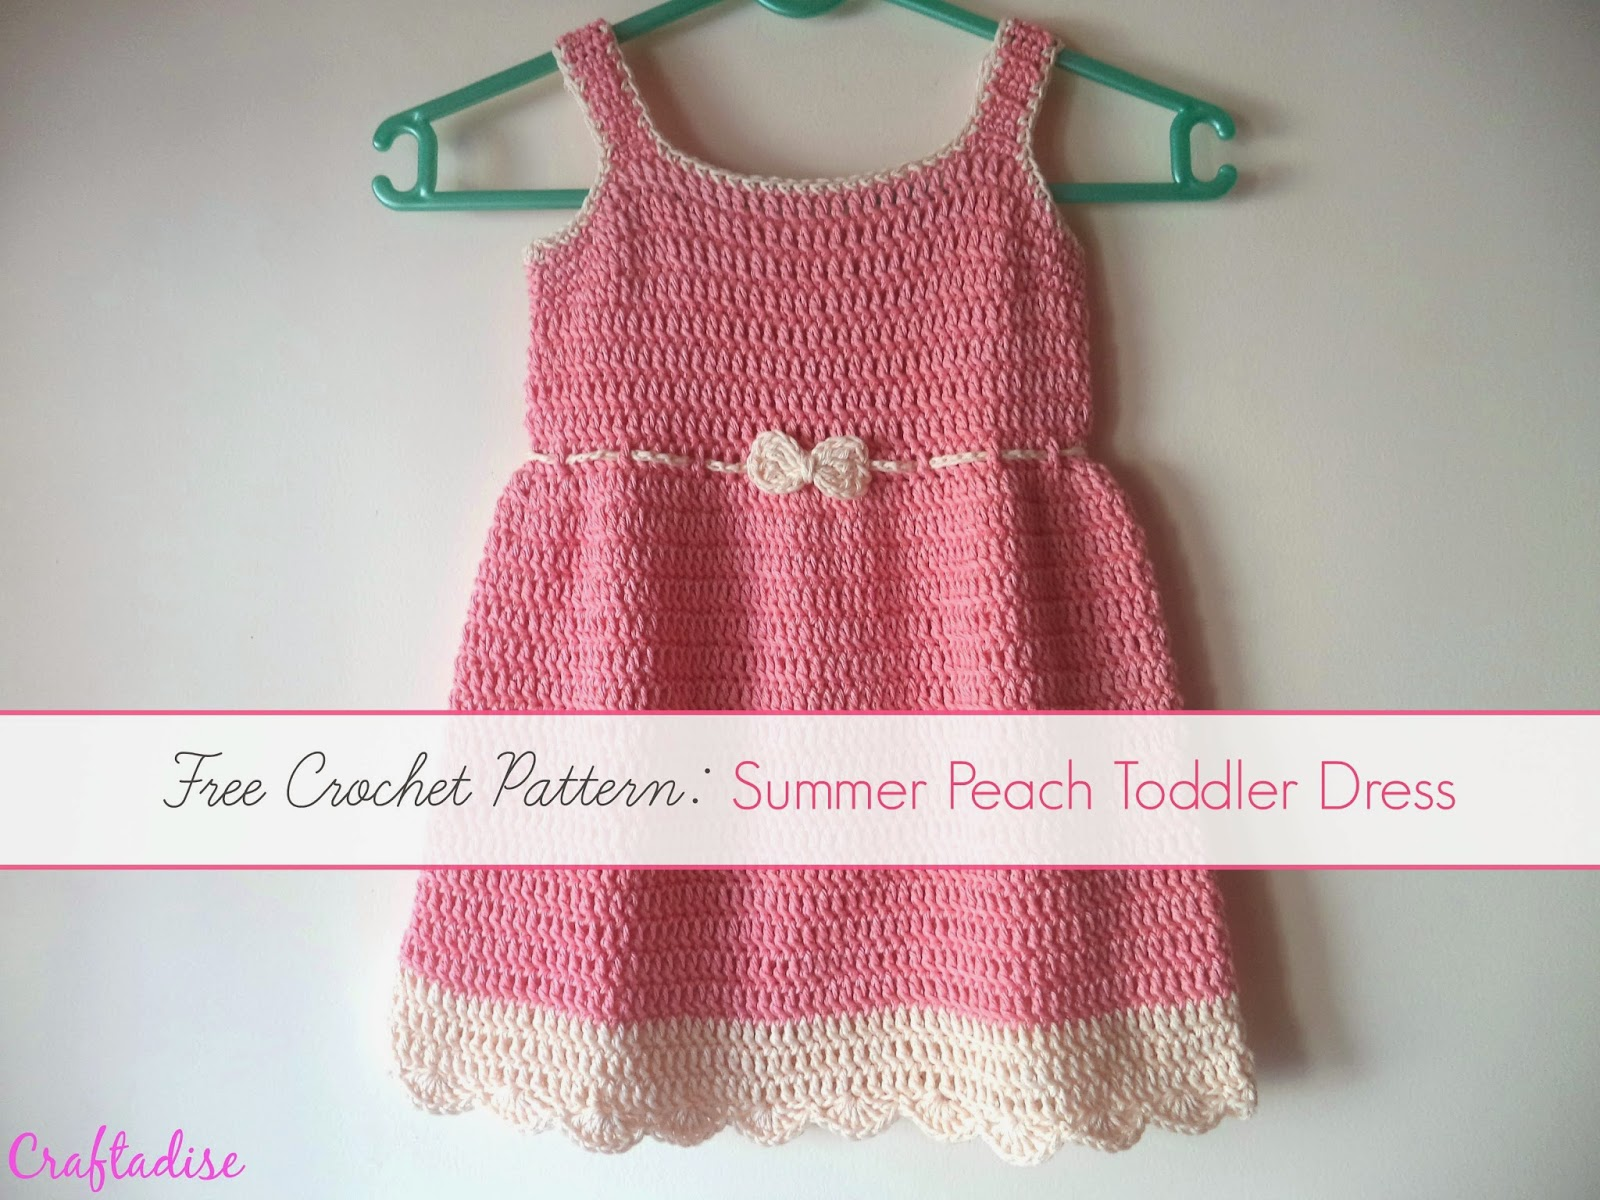 Crochet Patterns Free For Toddlers : Made In Craftadise Top Art & Crafts, Home Decor blog in ...